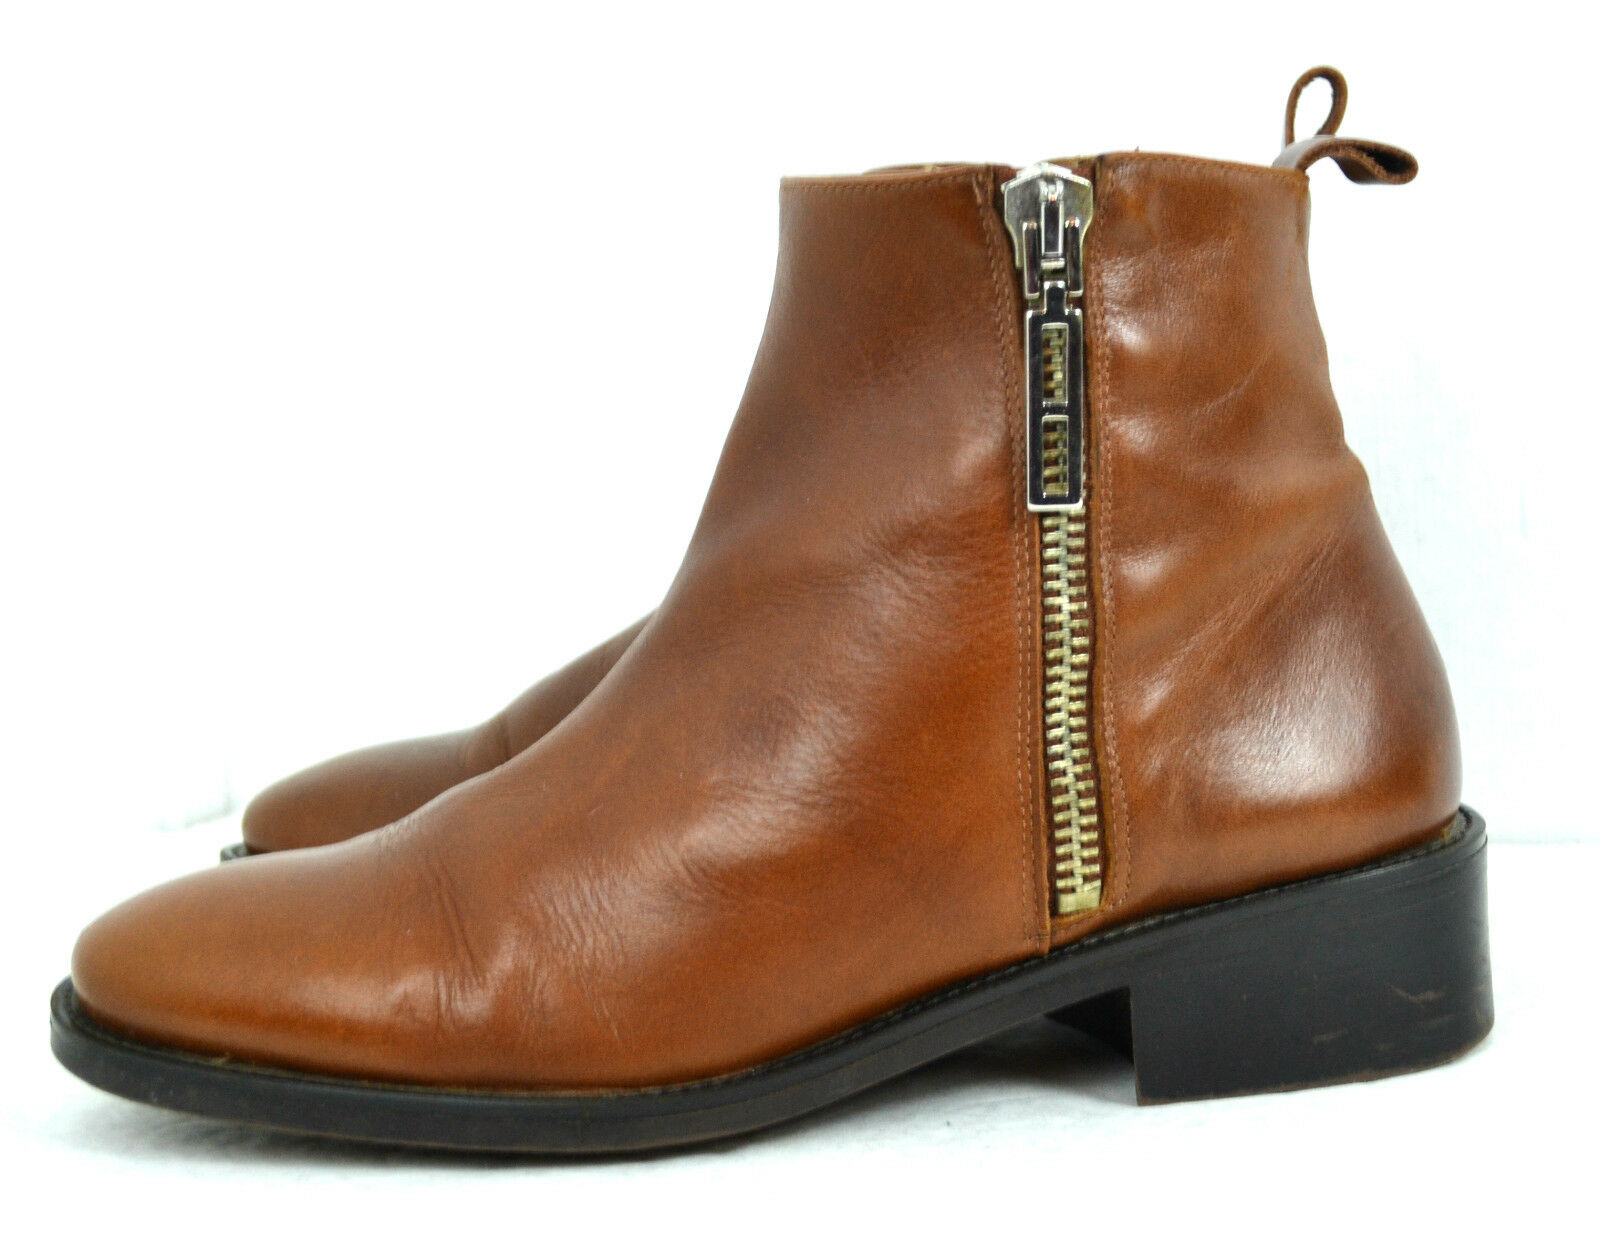 ZARA BASIC BROWN GENUINE LEATHER HIGH QULITY BOOTS SIZE 9-9.5/ 40